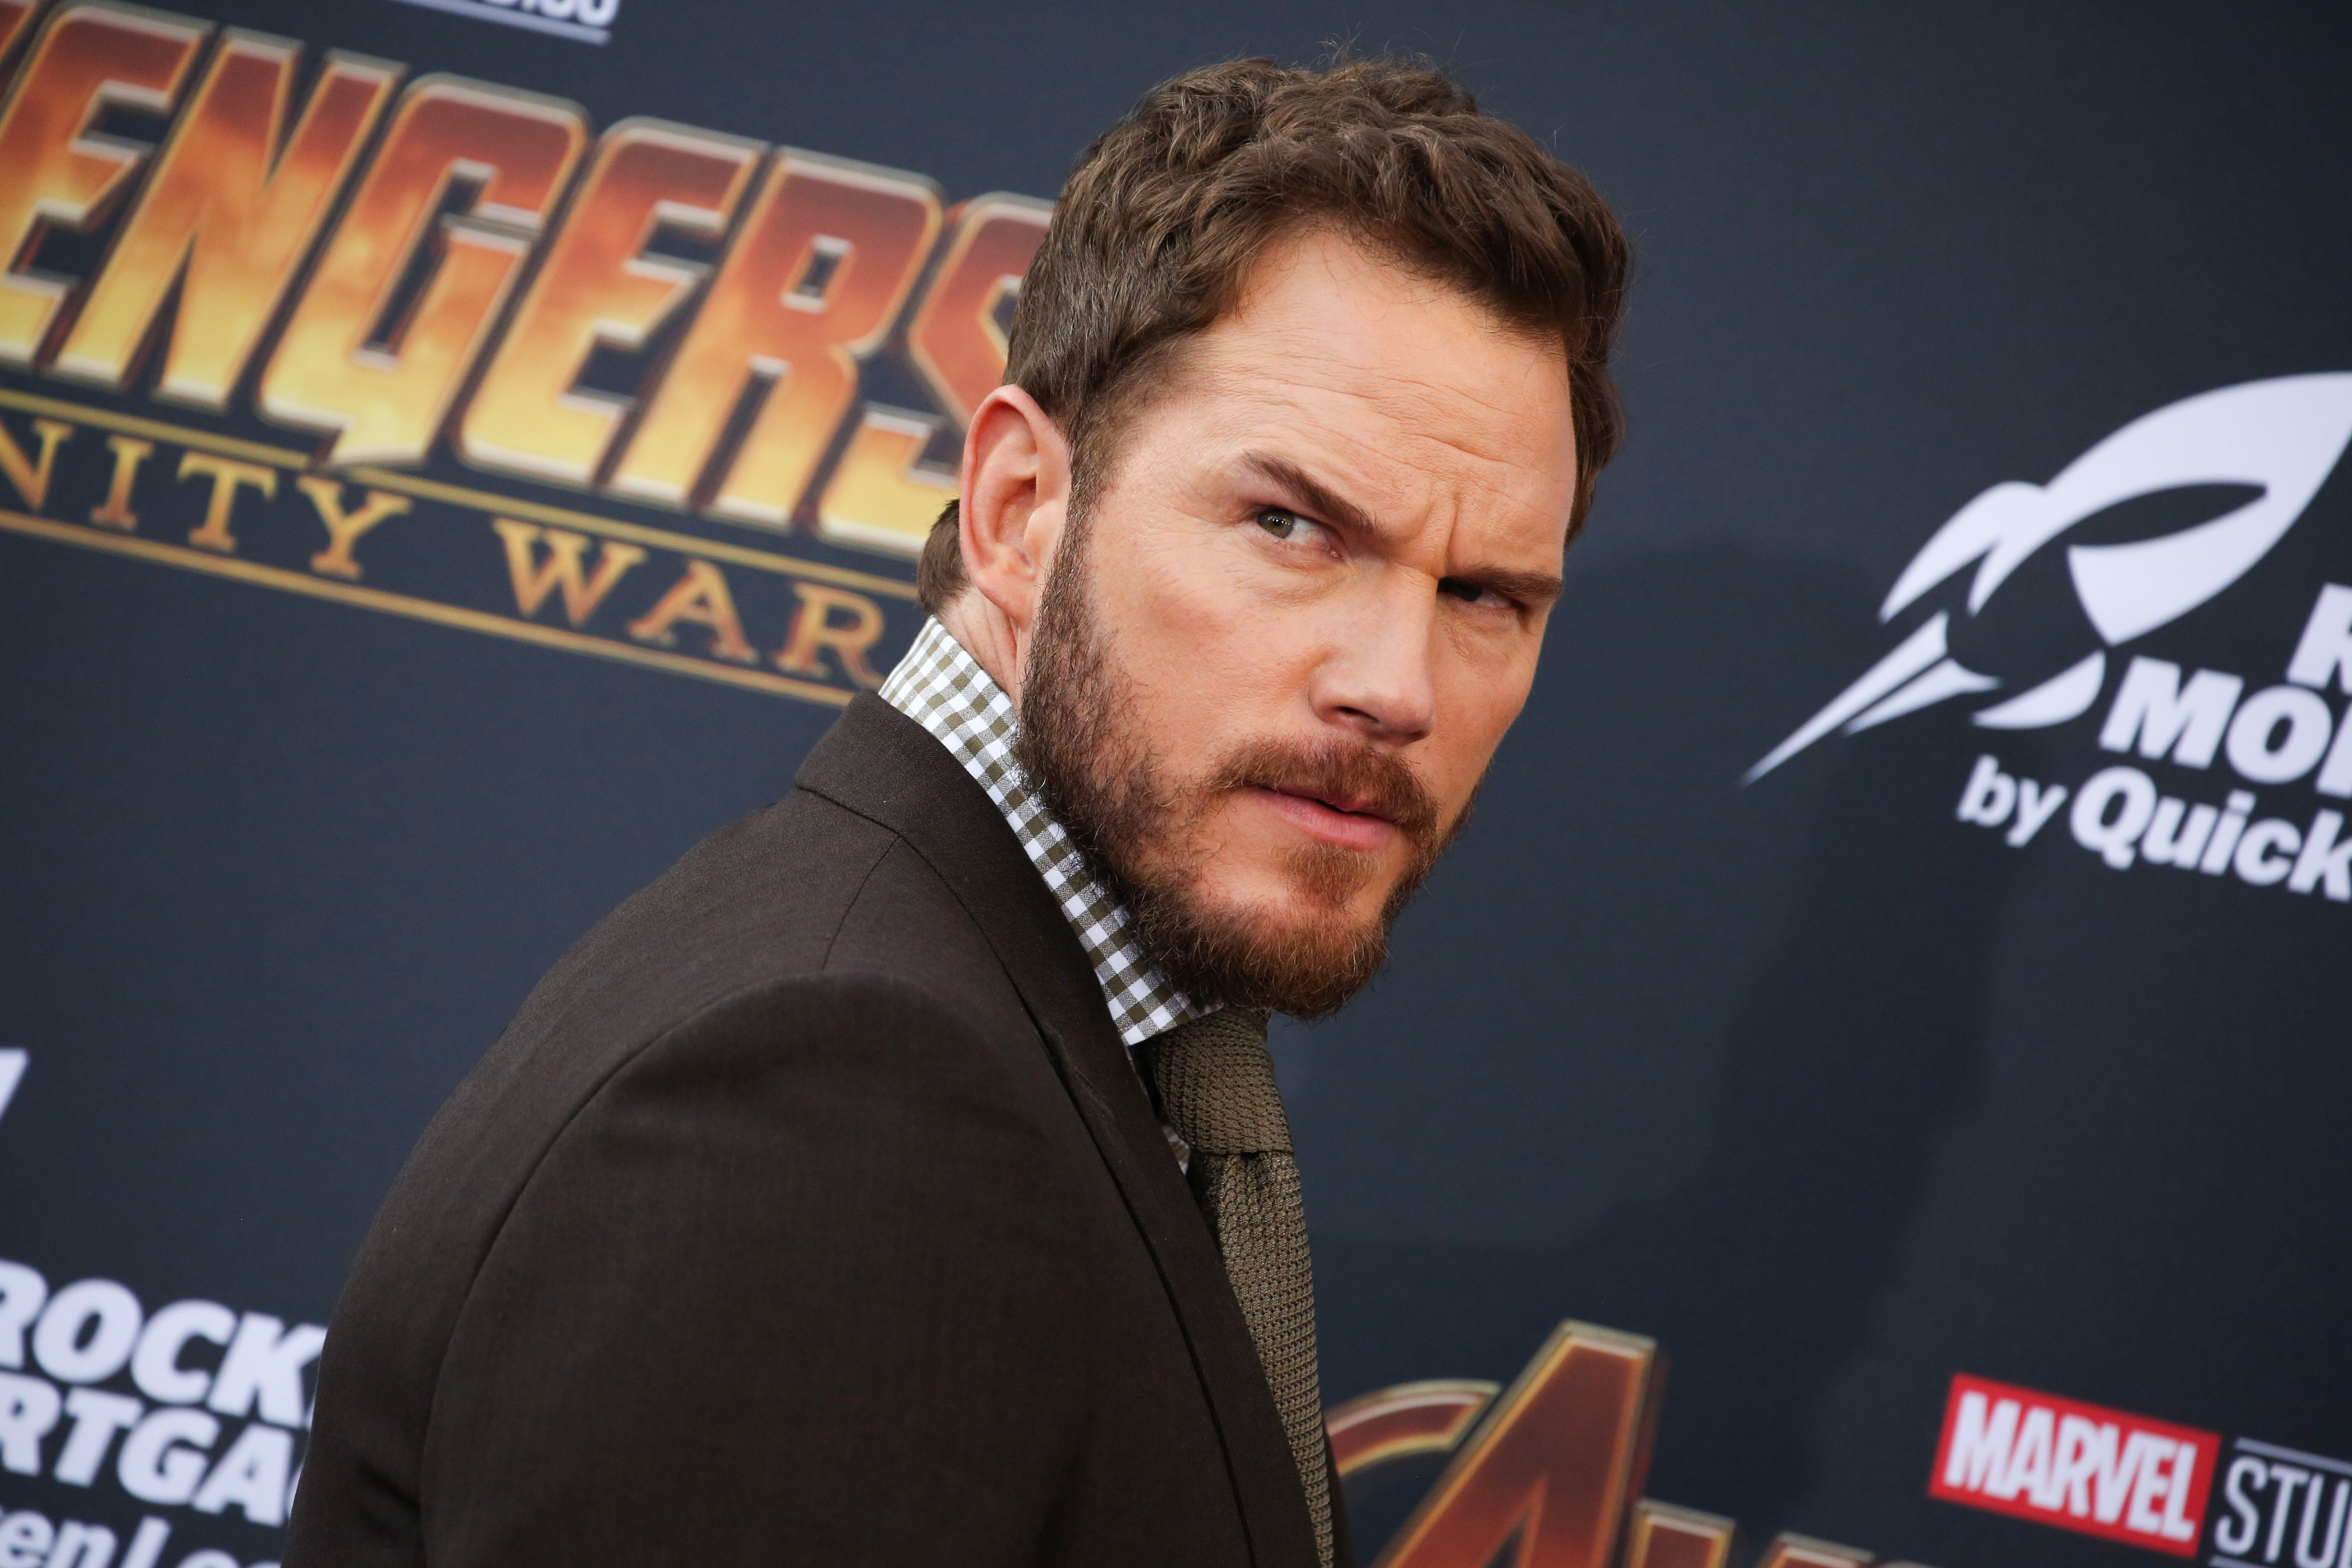 Chris Pratt to Be Honored With This Year's Generation Award